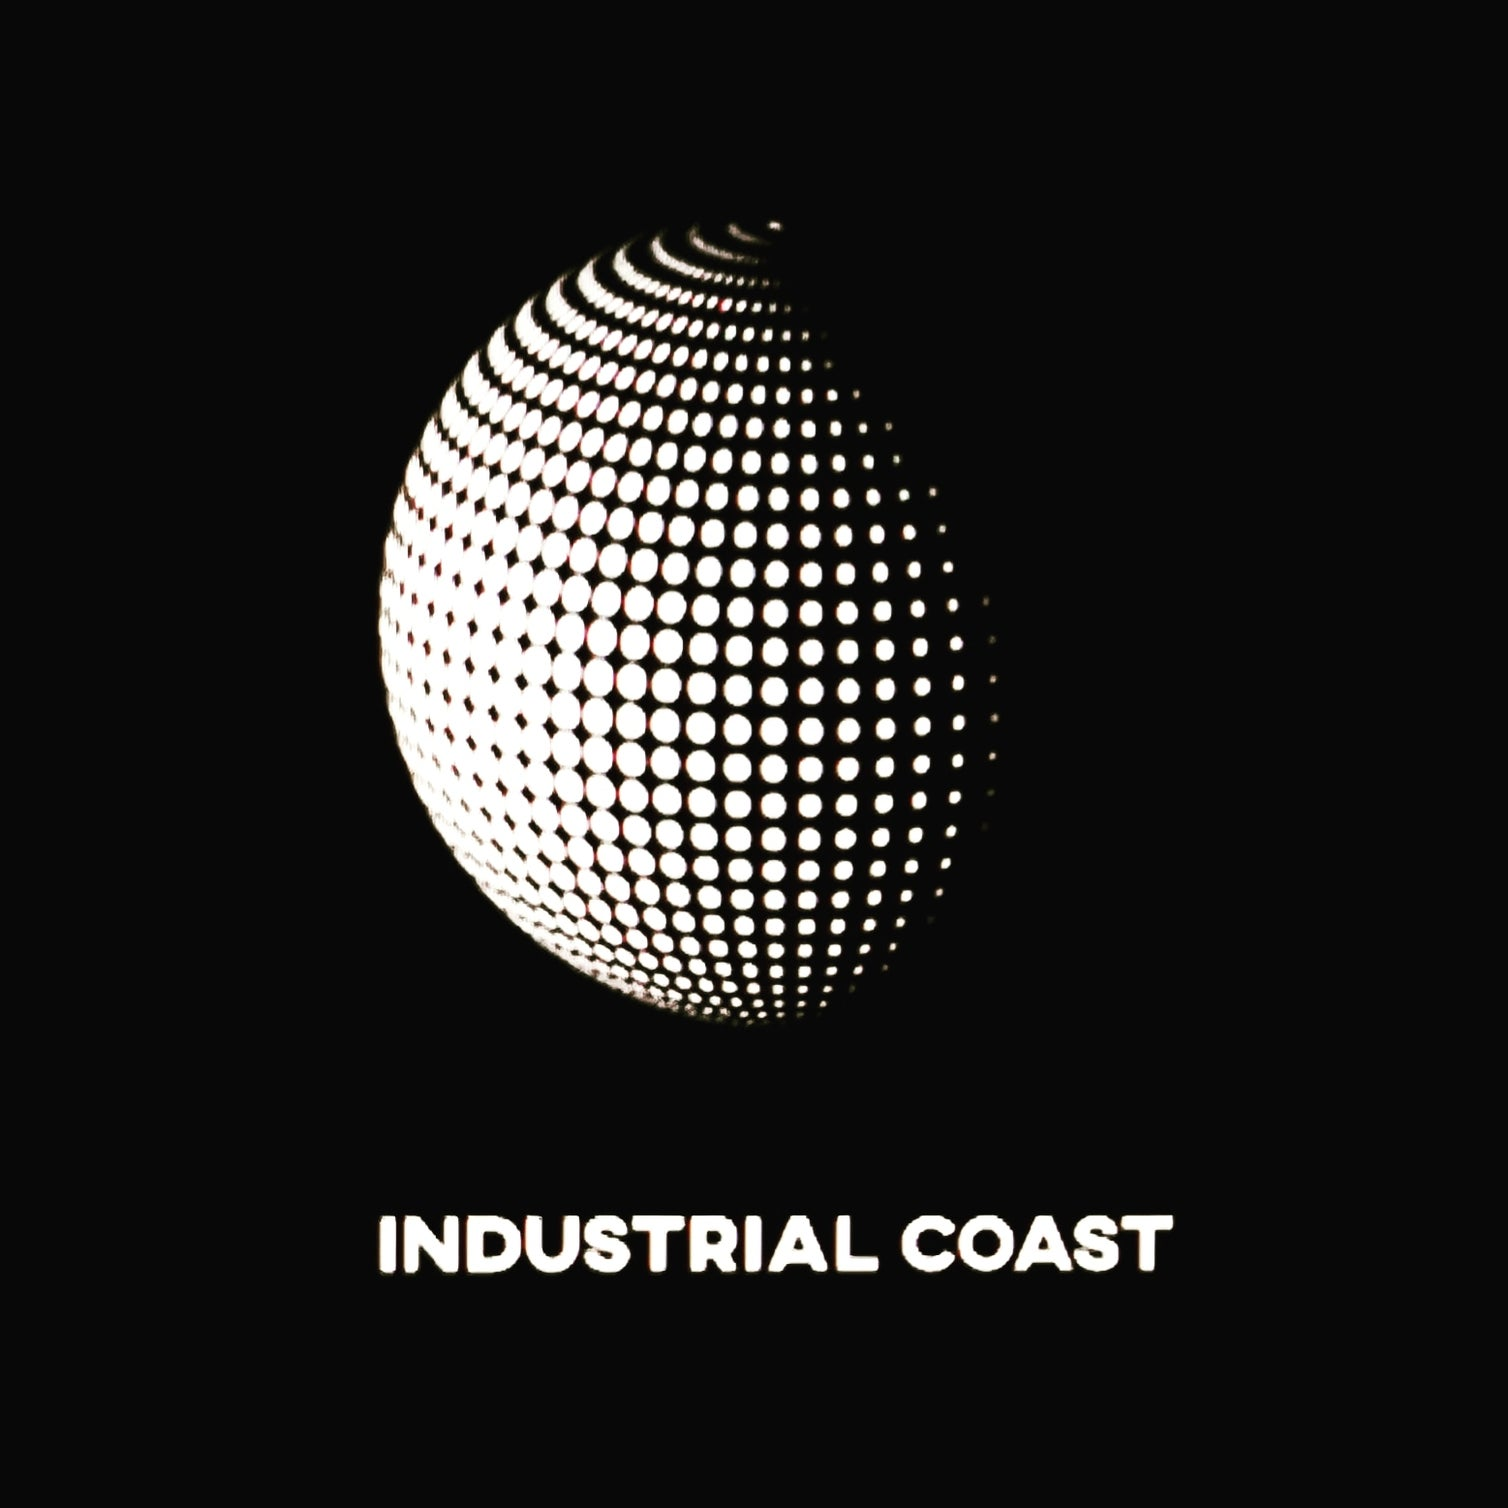 industrialcoast